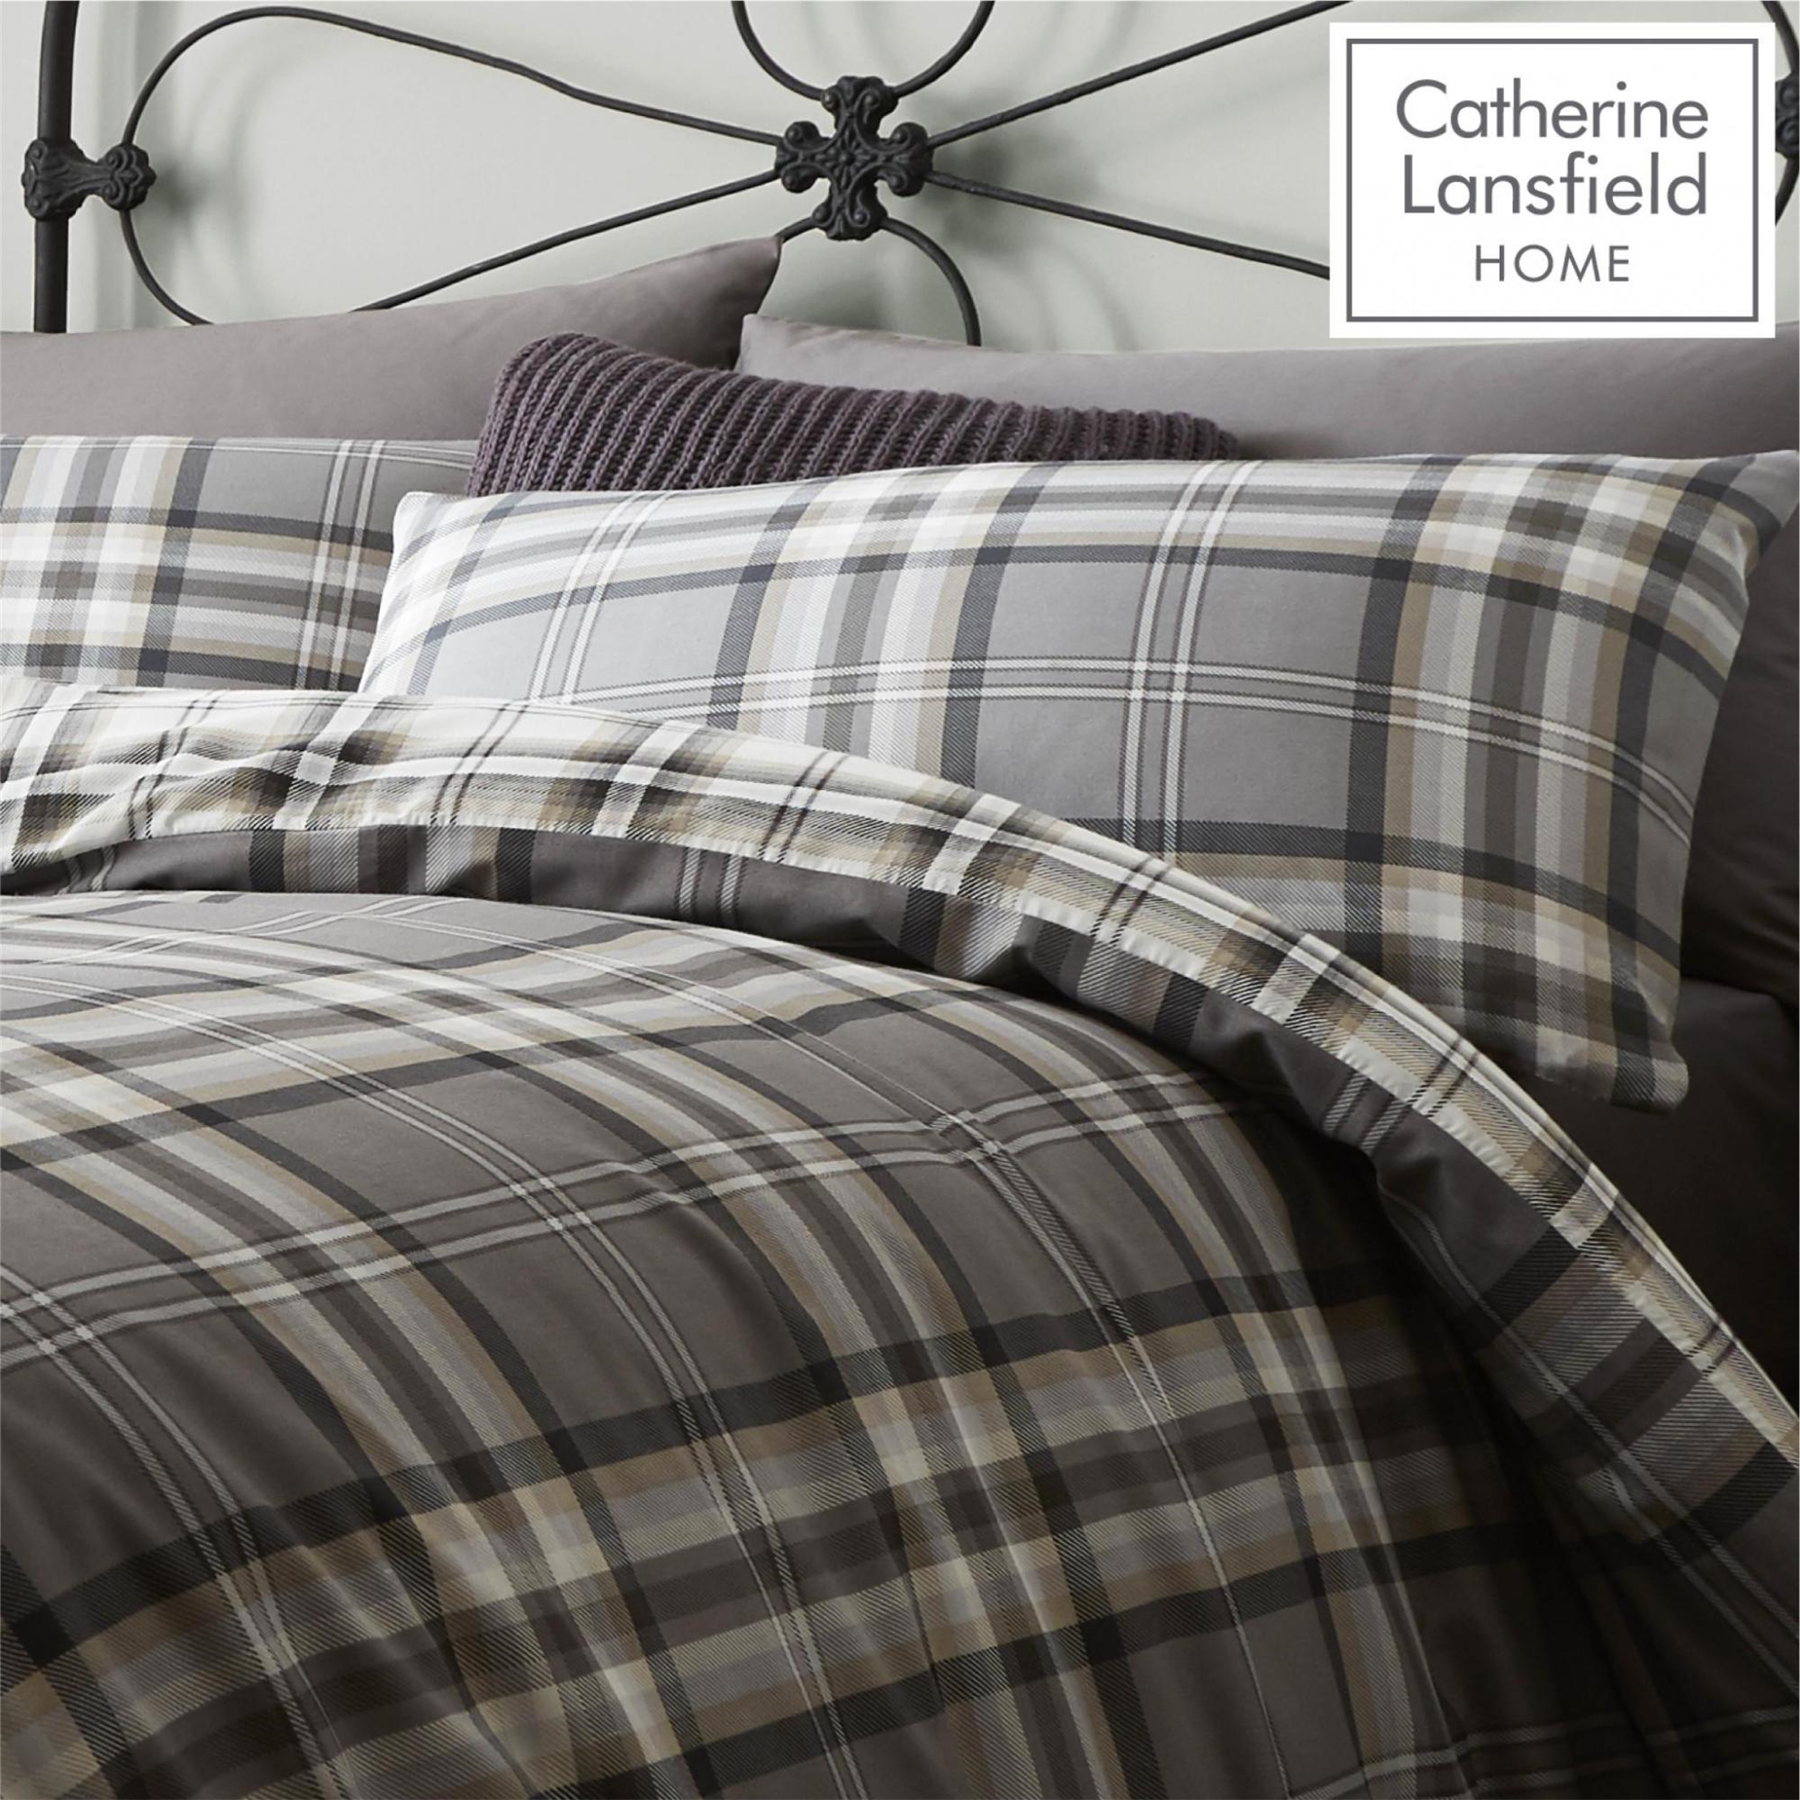 Catherine-Lansfield-Duvet-Set-Reversible-Check-Bedding-Charcoal-Pillows-Curtain thumbnail 15